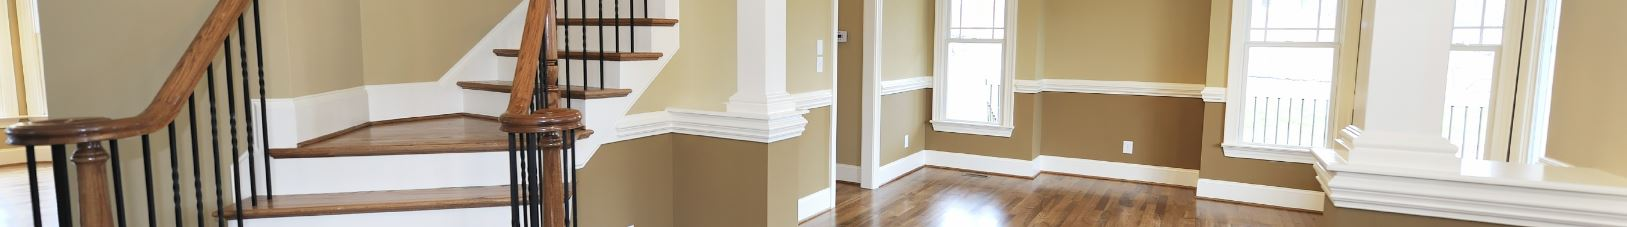 interitor-painting-residential-commercial-westminster-broomfield-thornton-northglenn-erie-lafayette-louisville